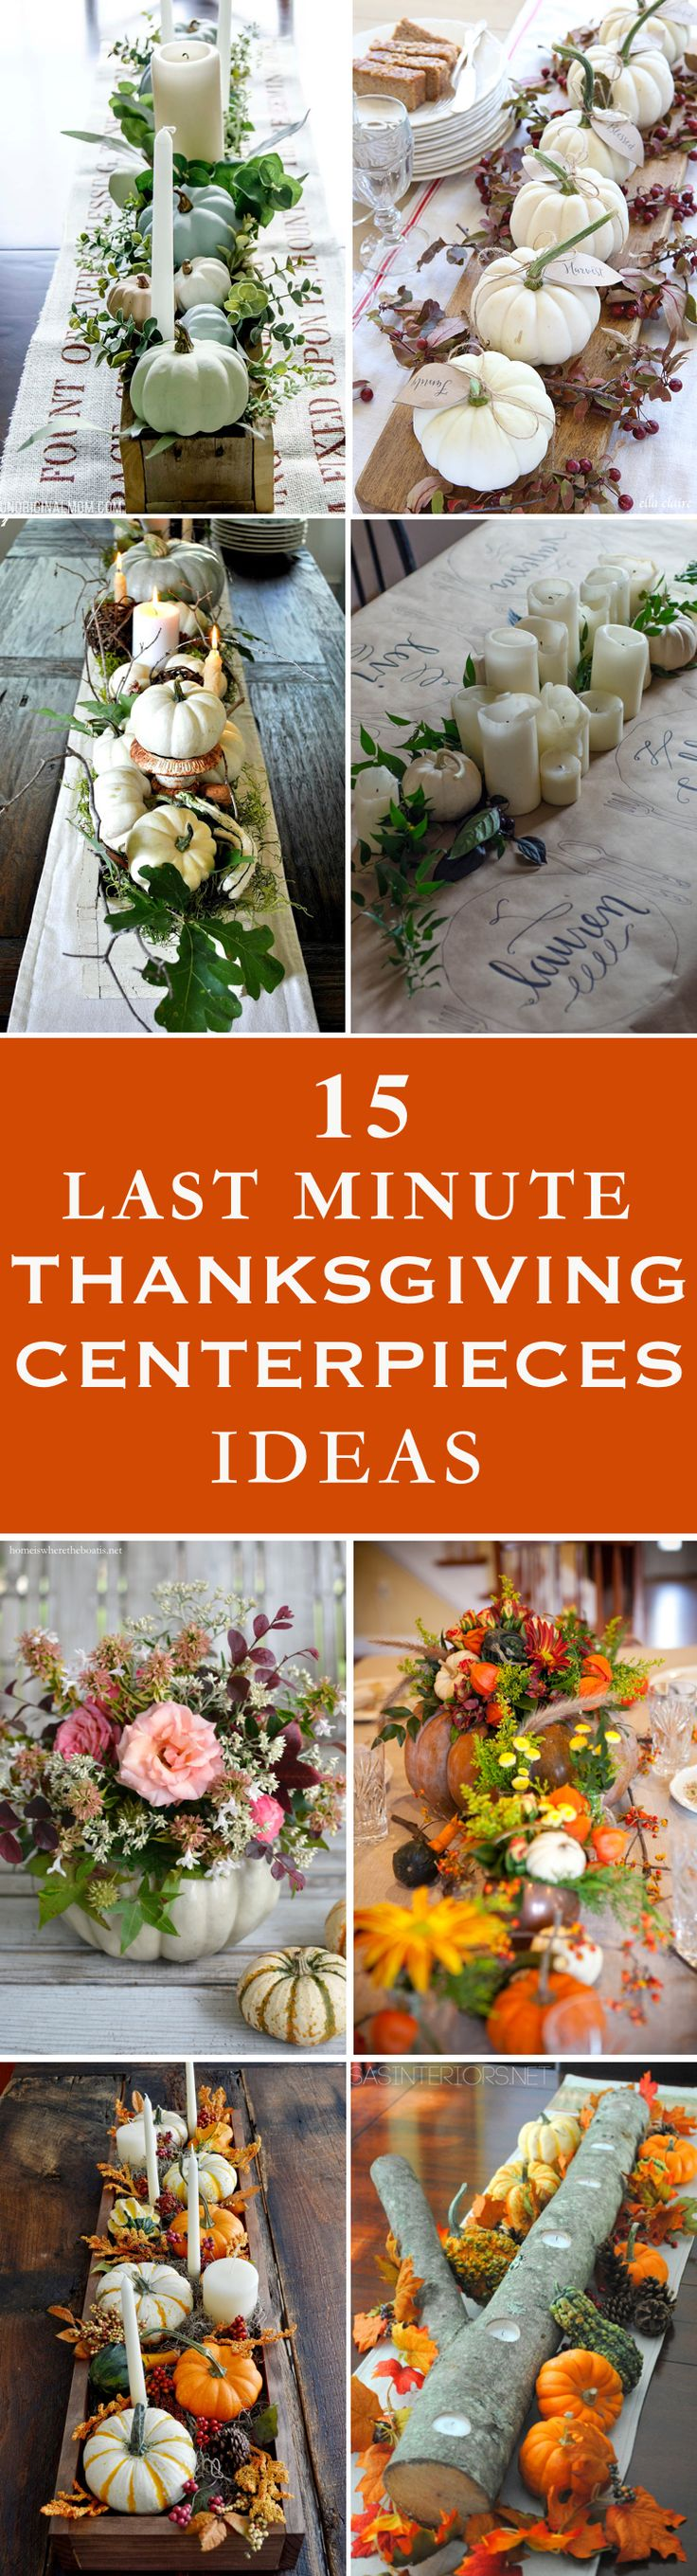 Get inspired by things around you to make these beautiful last minute Thanksgiving centerpieces with these easy ideas.